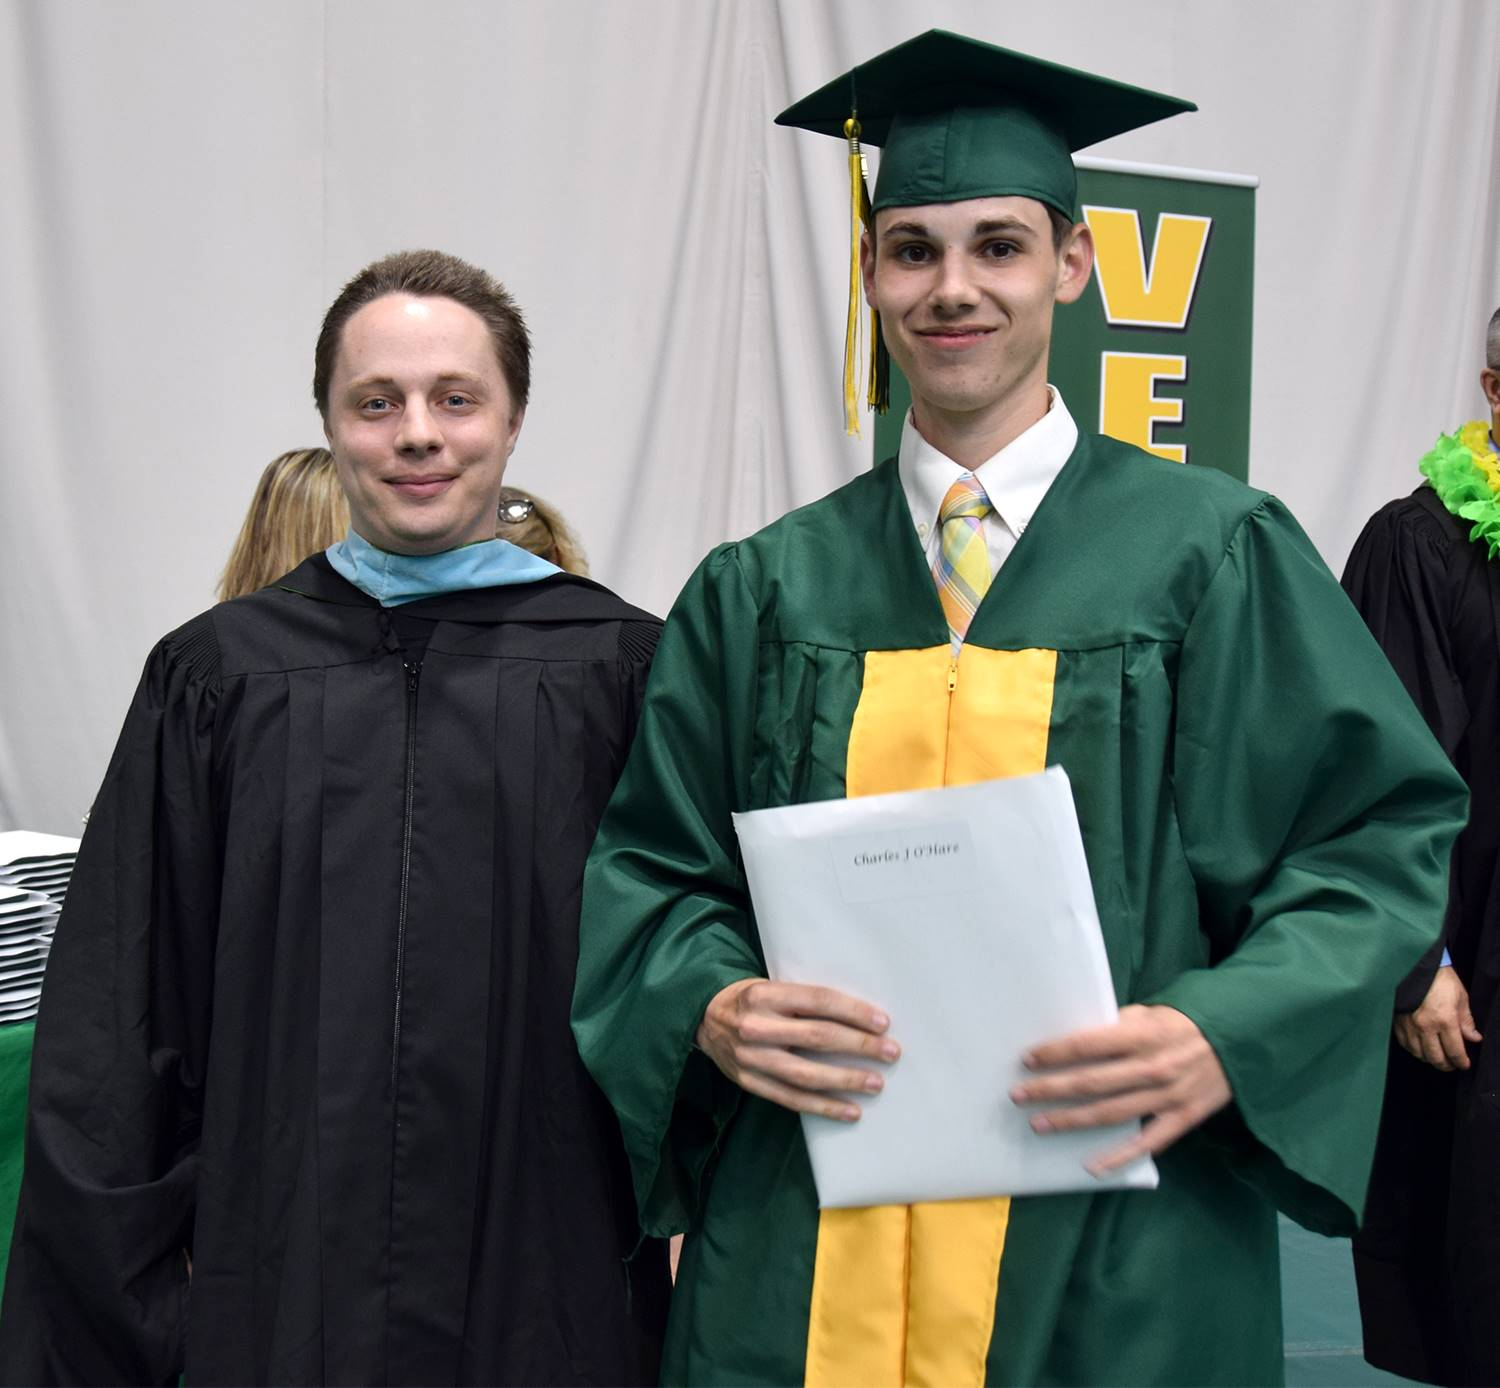 A Vestal High School teacher stands next to one of his students to which he presented his high schoo